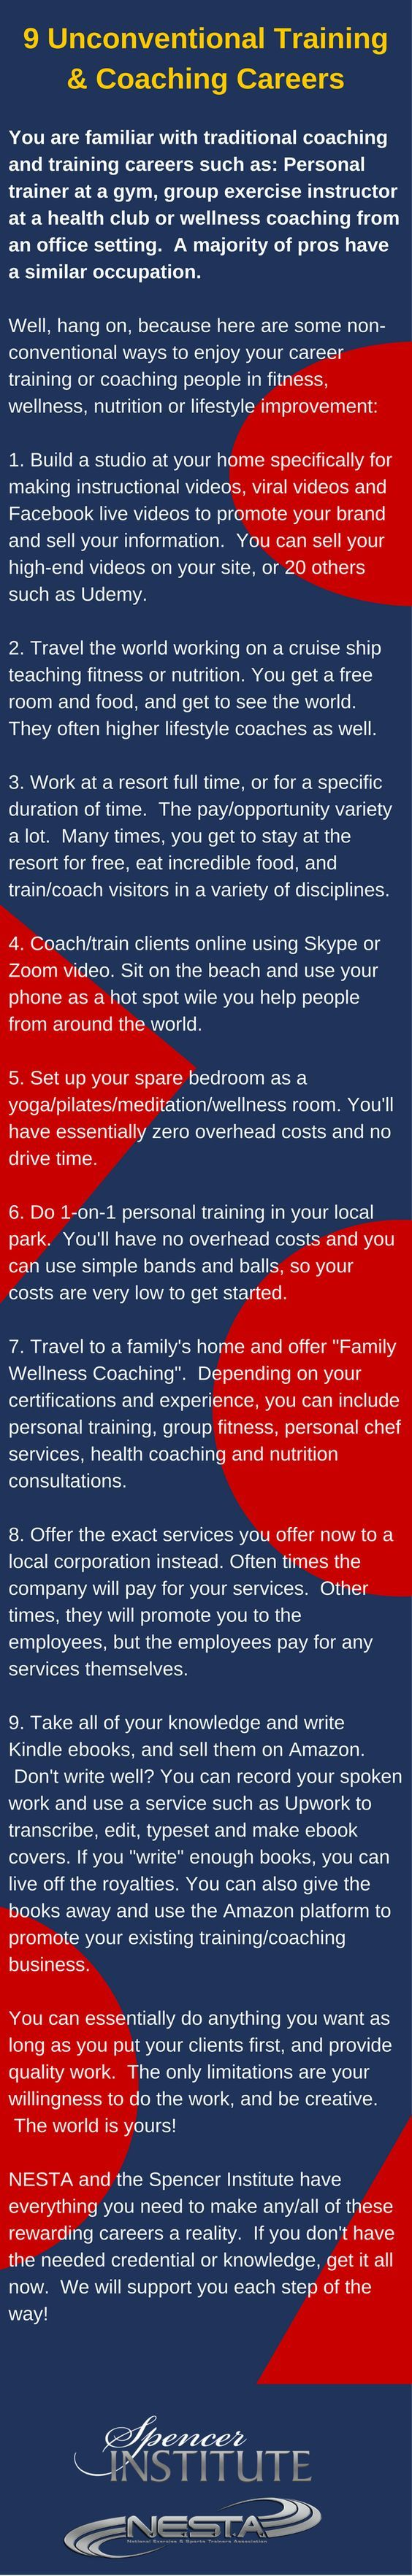 100 best Health and Fitness Education images on Pinterest